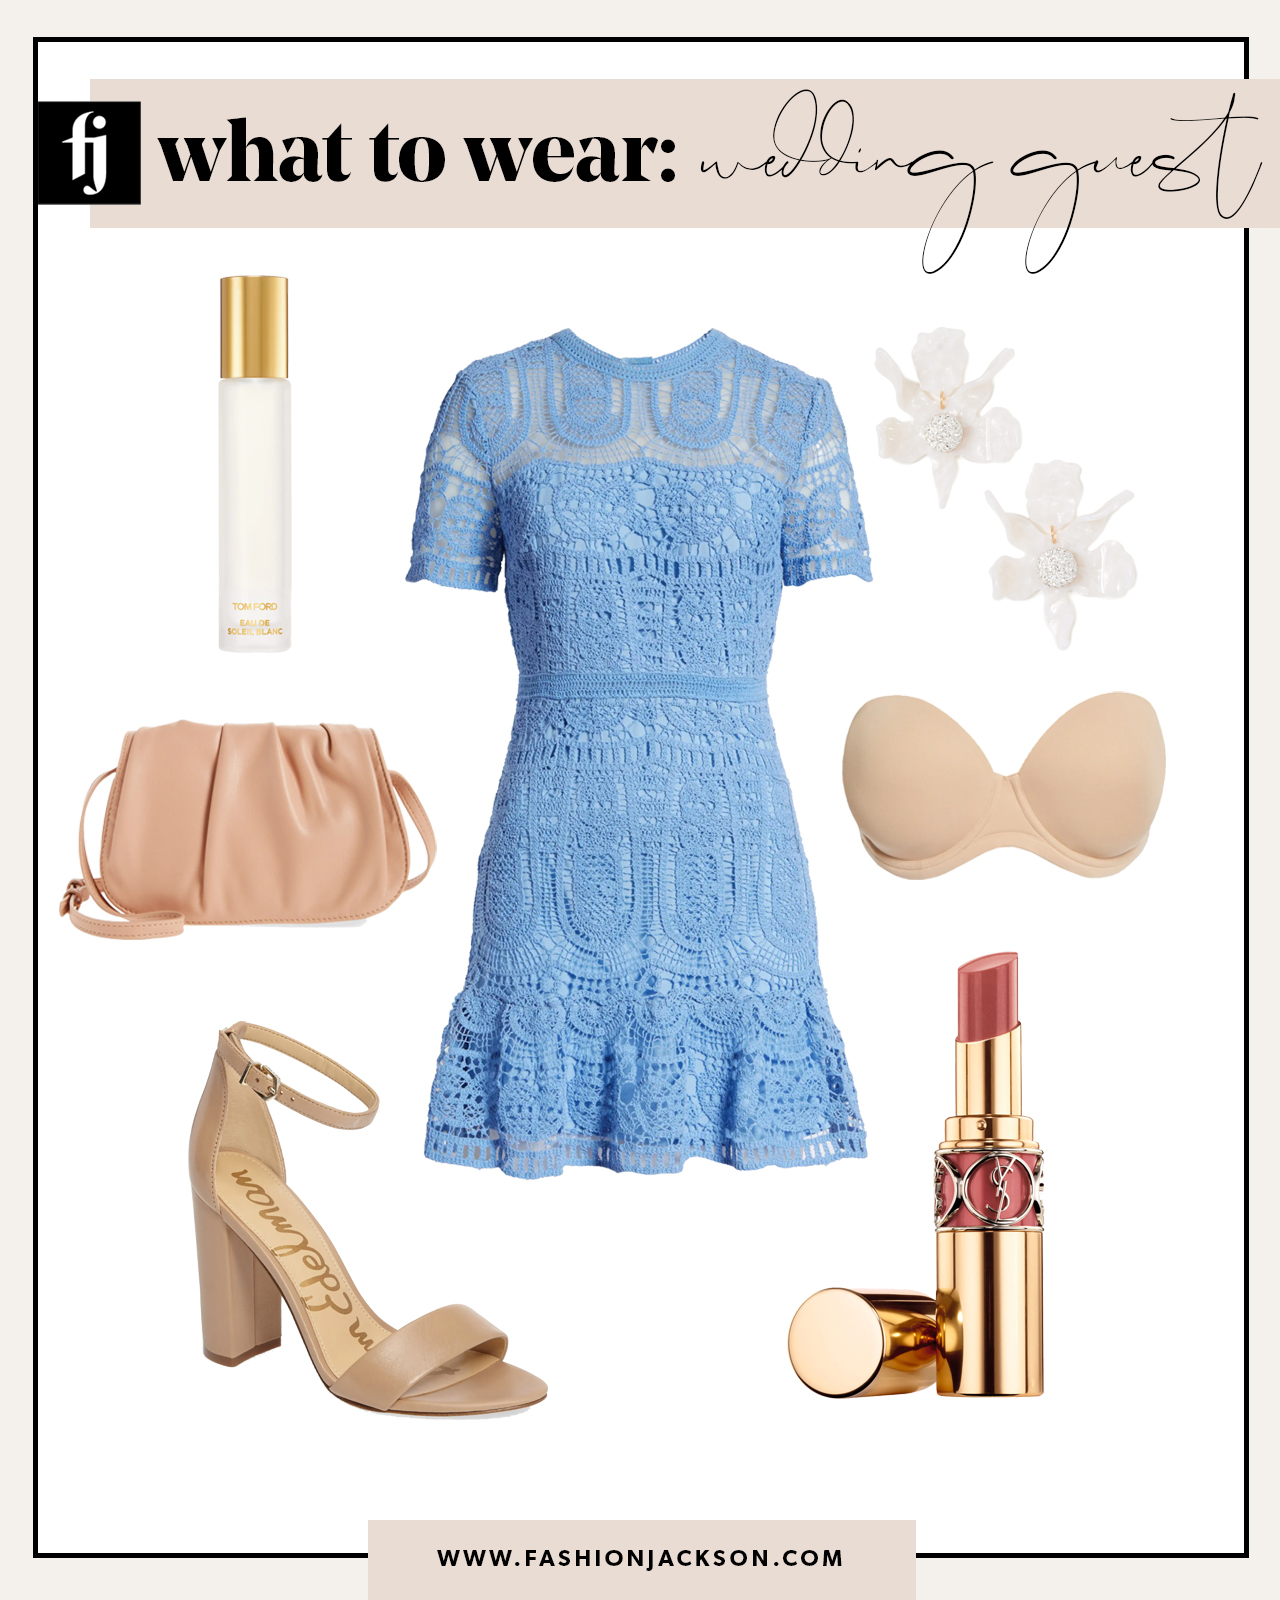 wedding guest outfit 4